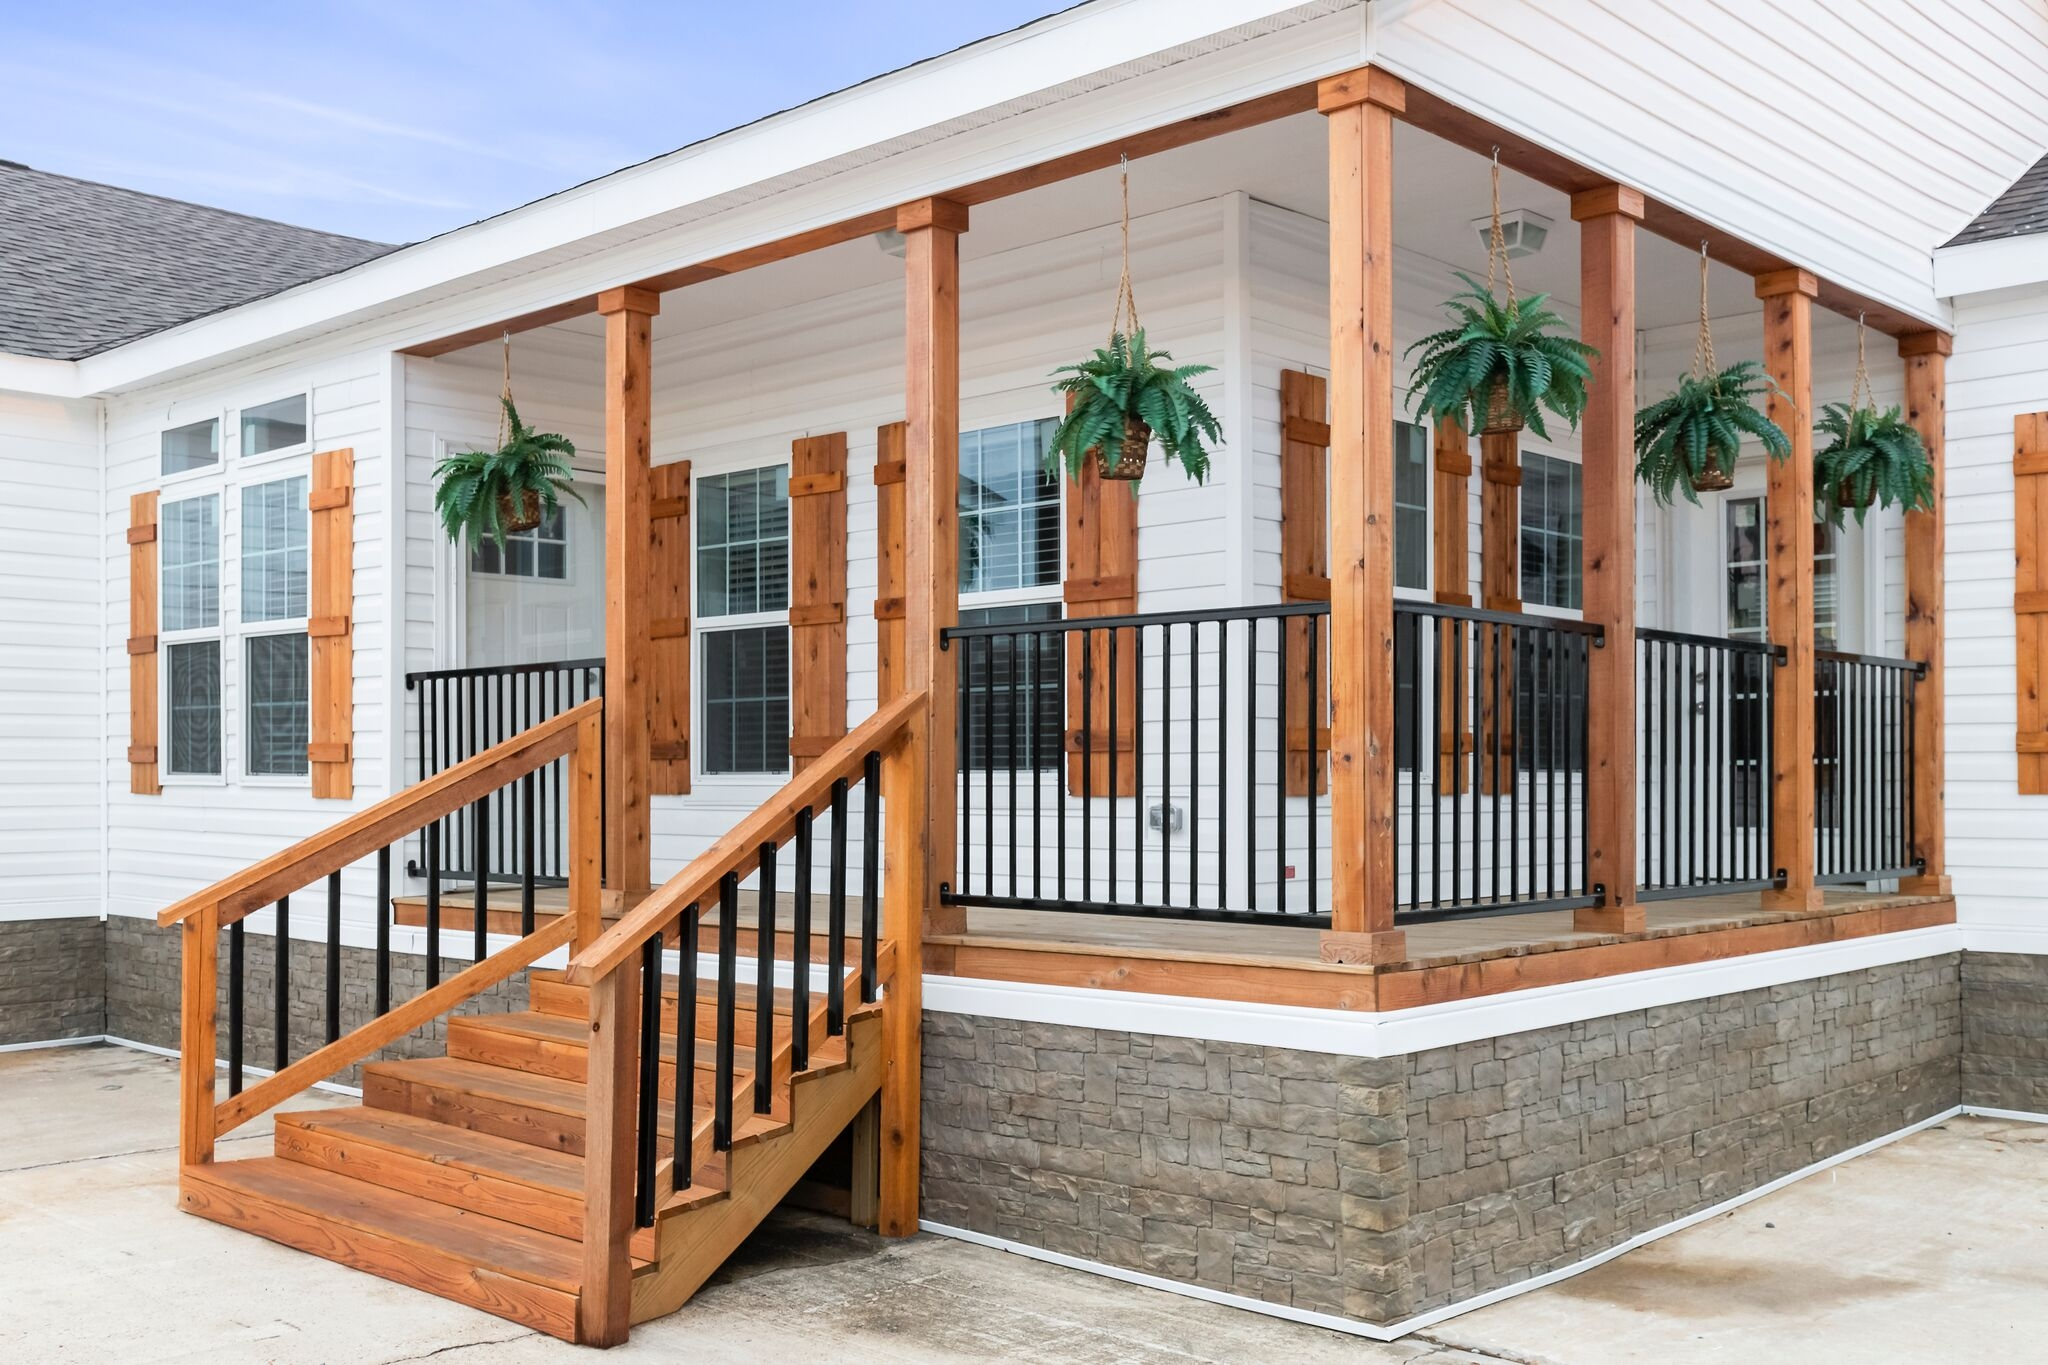 Greg Tilley S Bossier Mobile Homes Bossier City La Mobile | Wood Mobile Home Steps For Sale | Trailer House | Two Sided | Cost | Movable | Portable